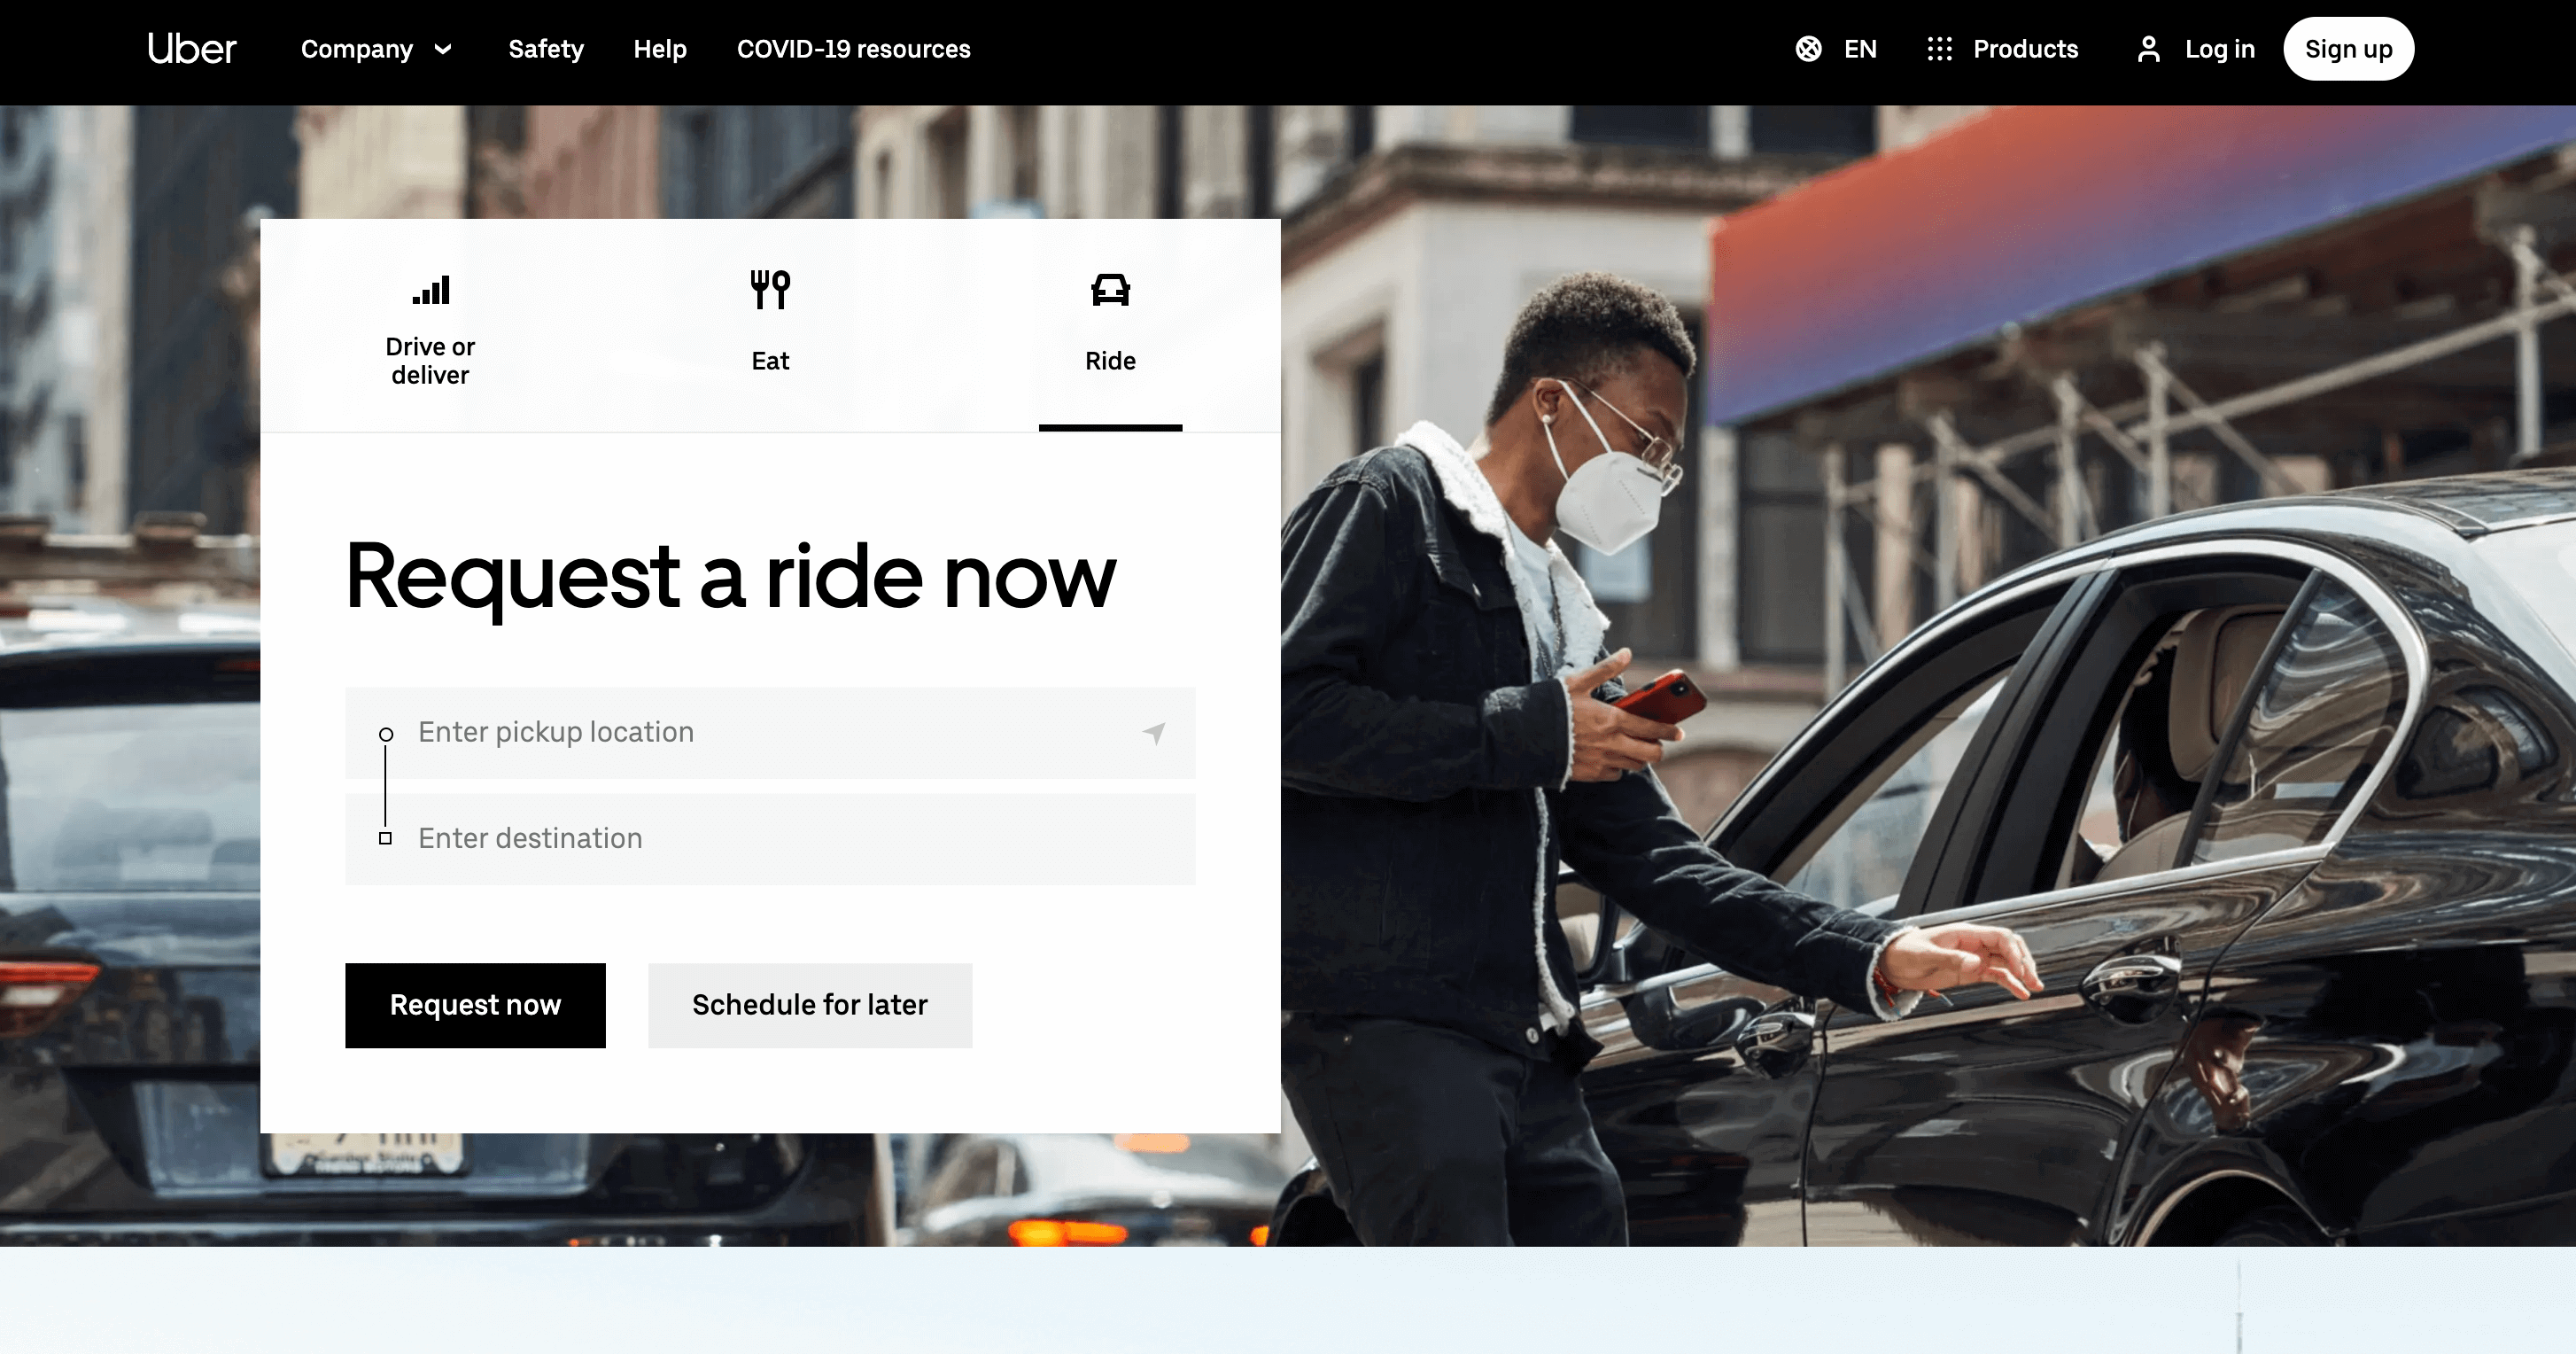 uber.com landing page converts very well